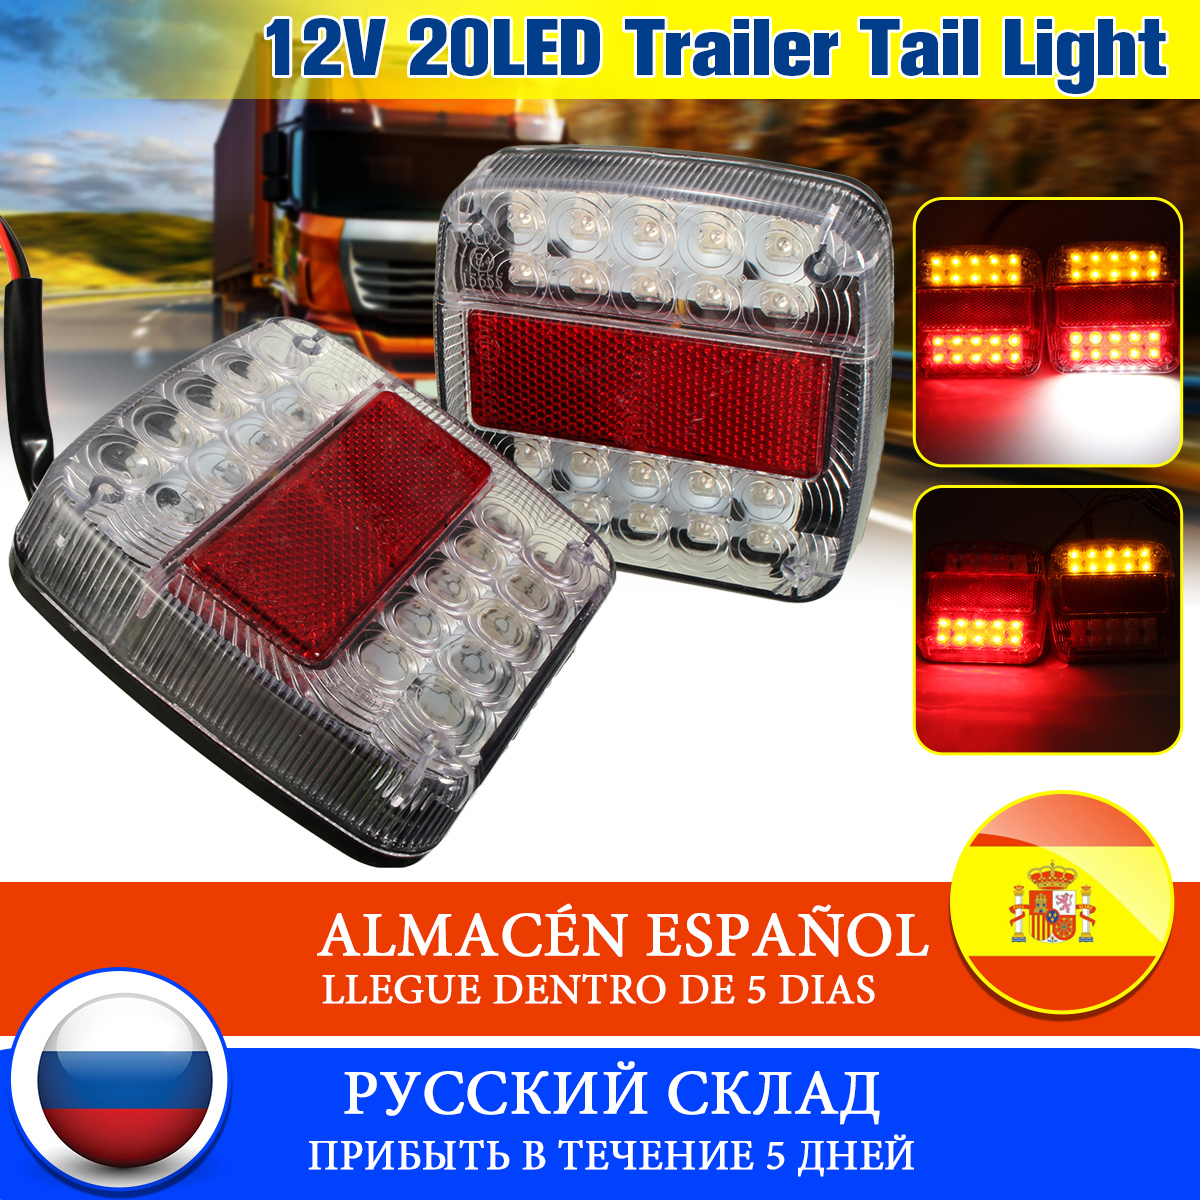 2X 12V 26 LED Tail Light Turn Signal Rear Brake Light Number License Plate For Car Truck Trailer Caravans UTE Campers ATV E-mark